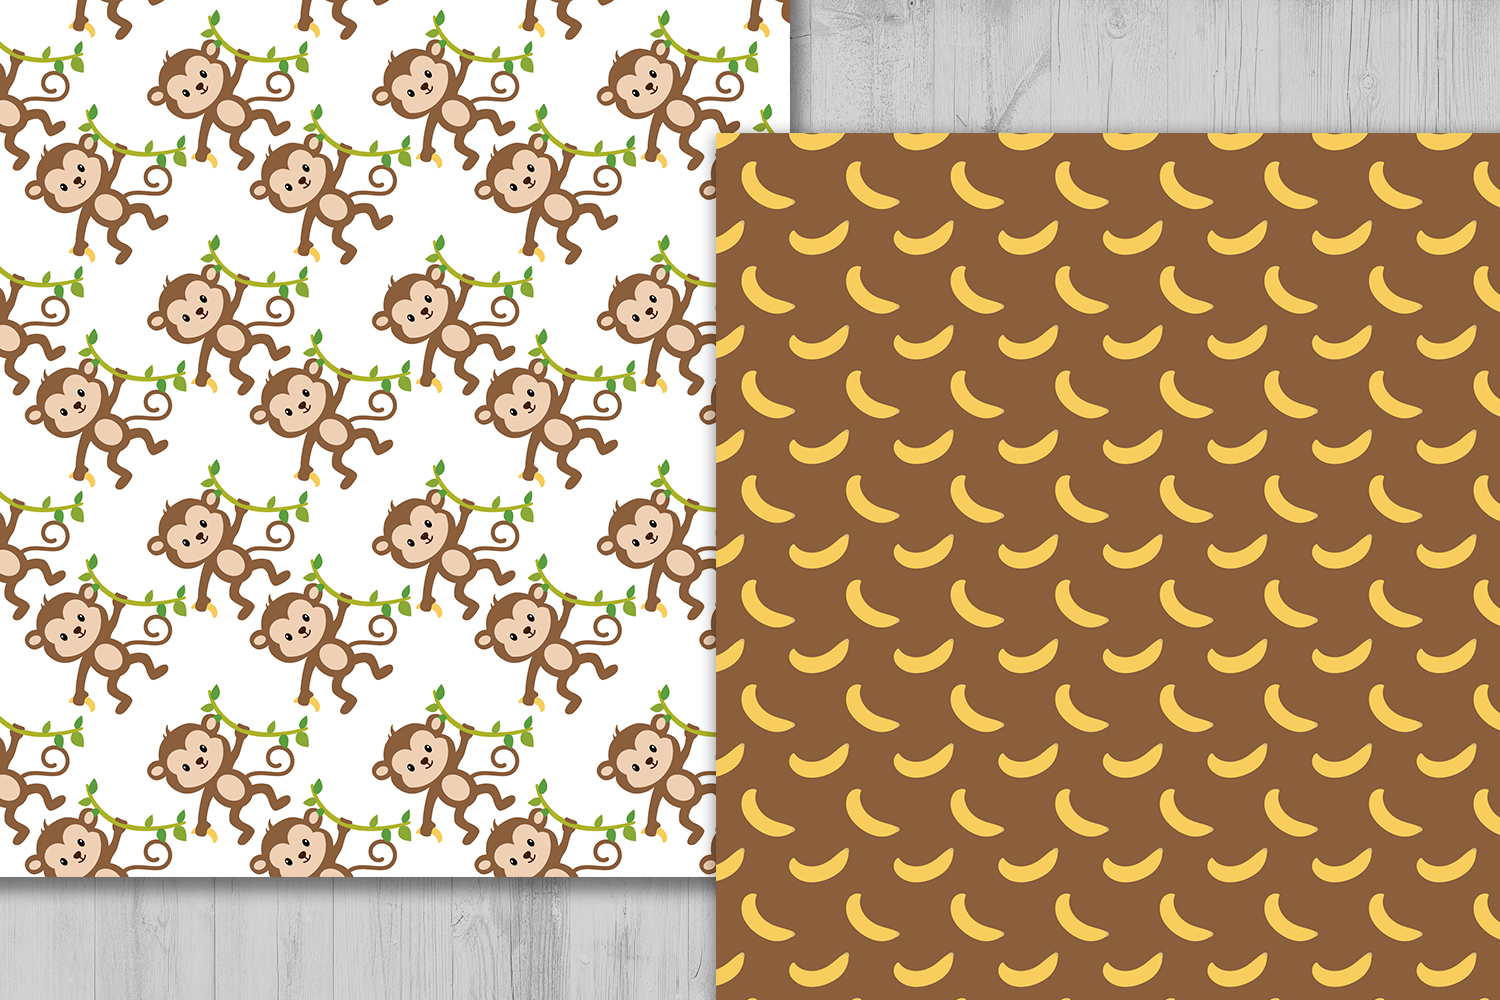 Monkey Digital Paper, Animals Background, Banana Pattern, Jungle Scrapbooking Papers, Safari Background, Zoo Pattern, Printables, Monkey Clipart. example image 2